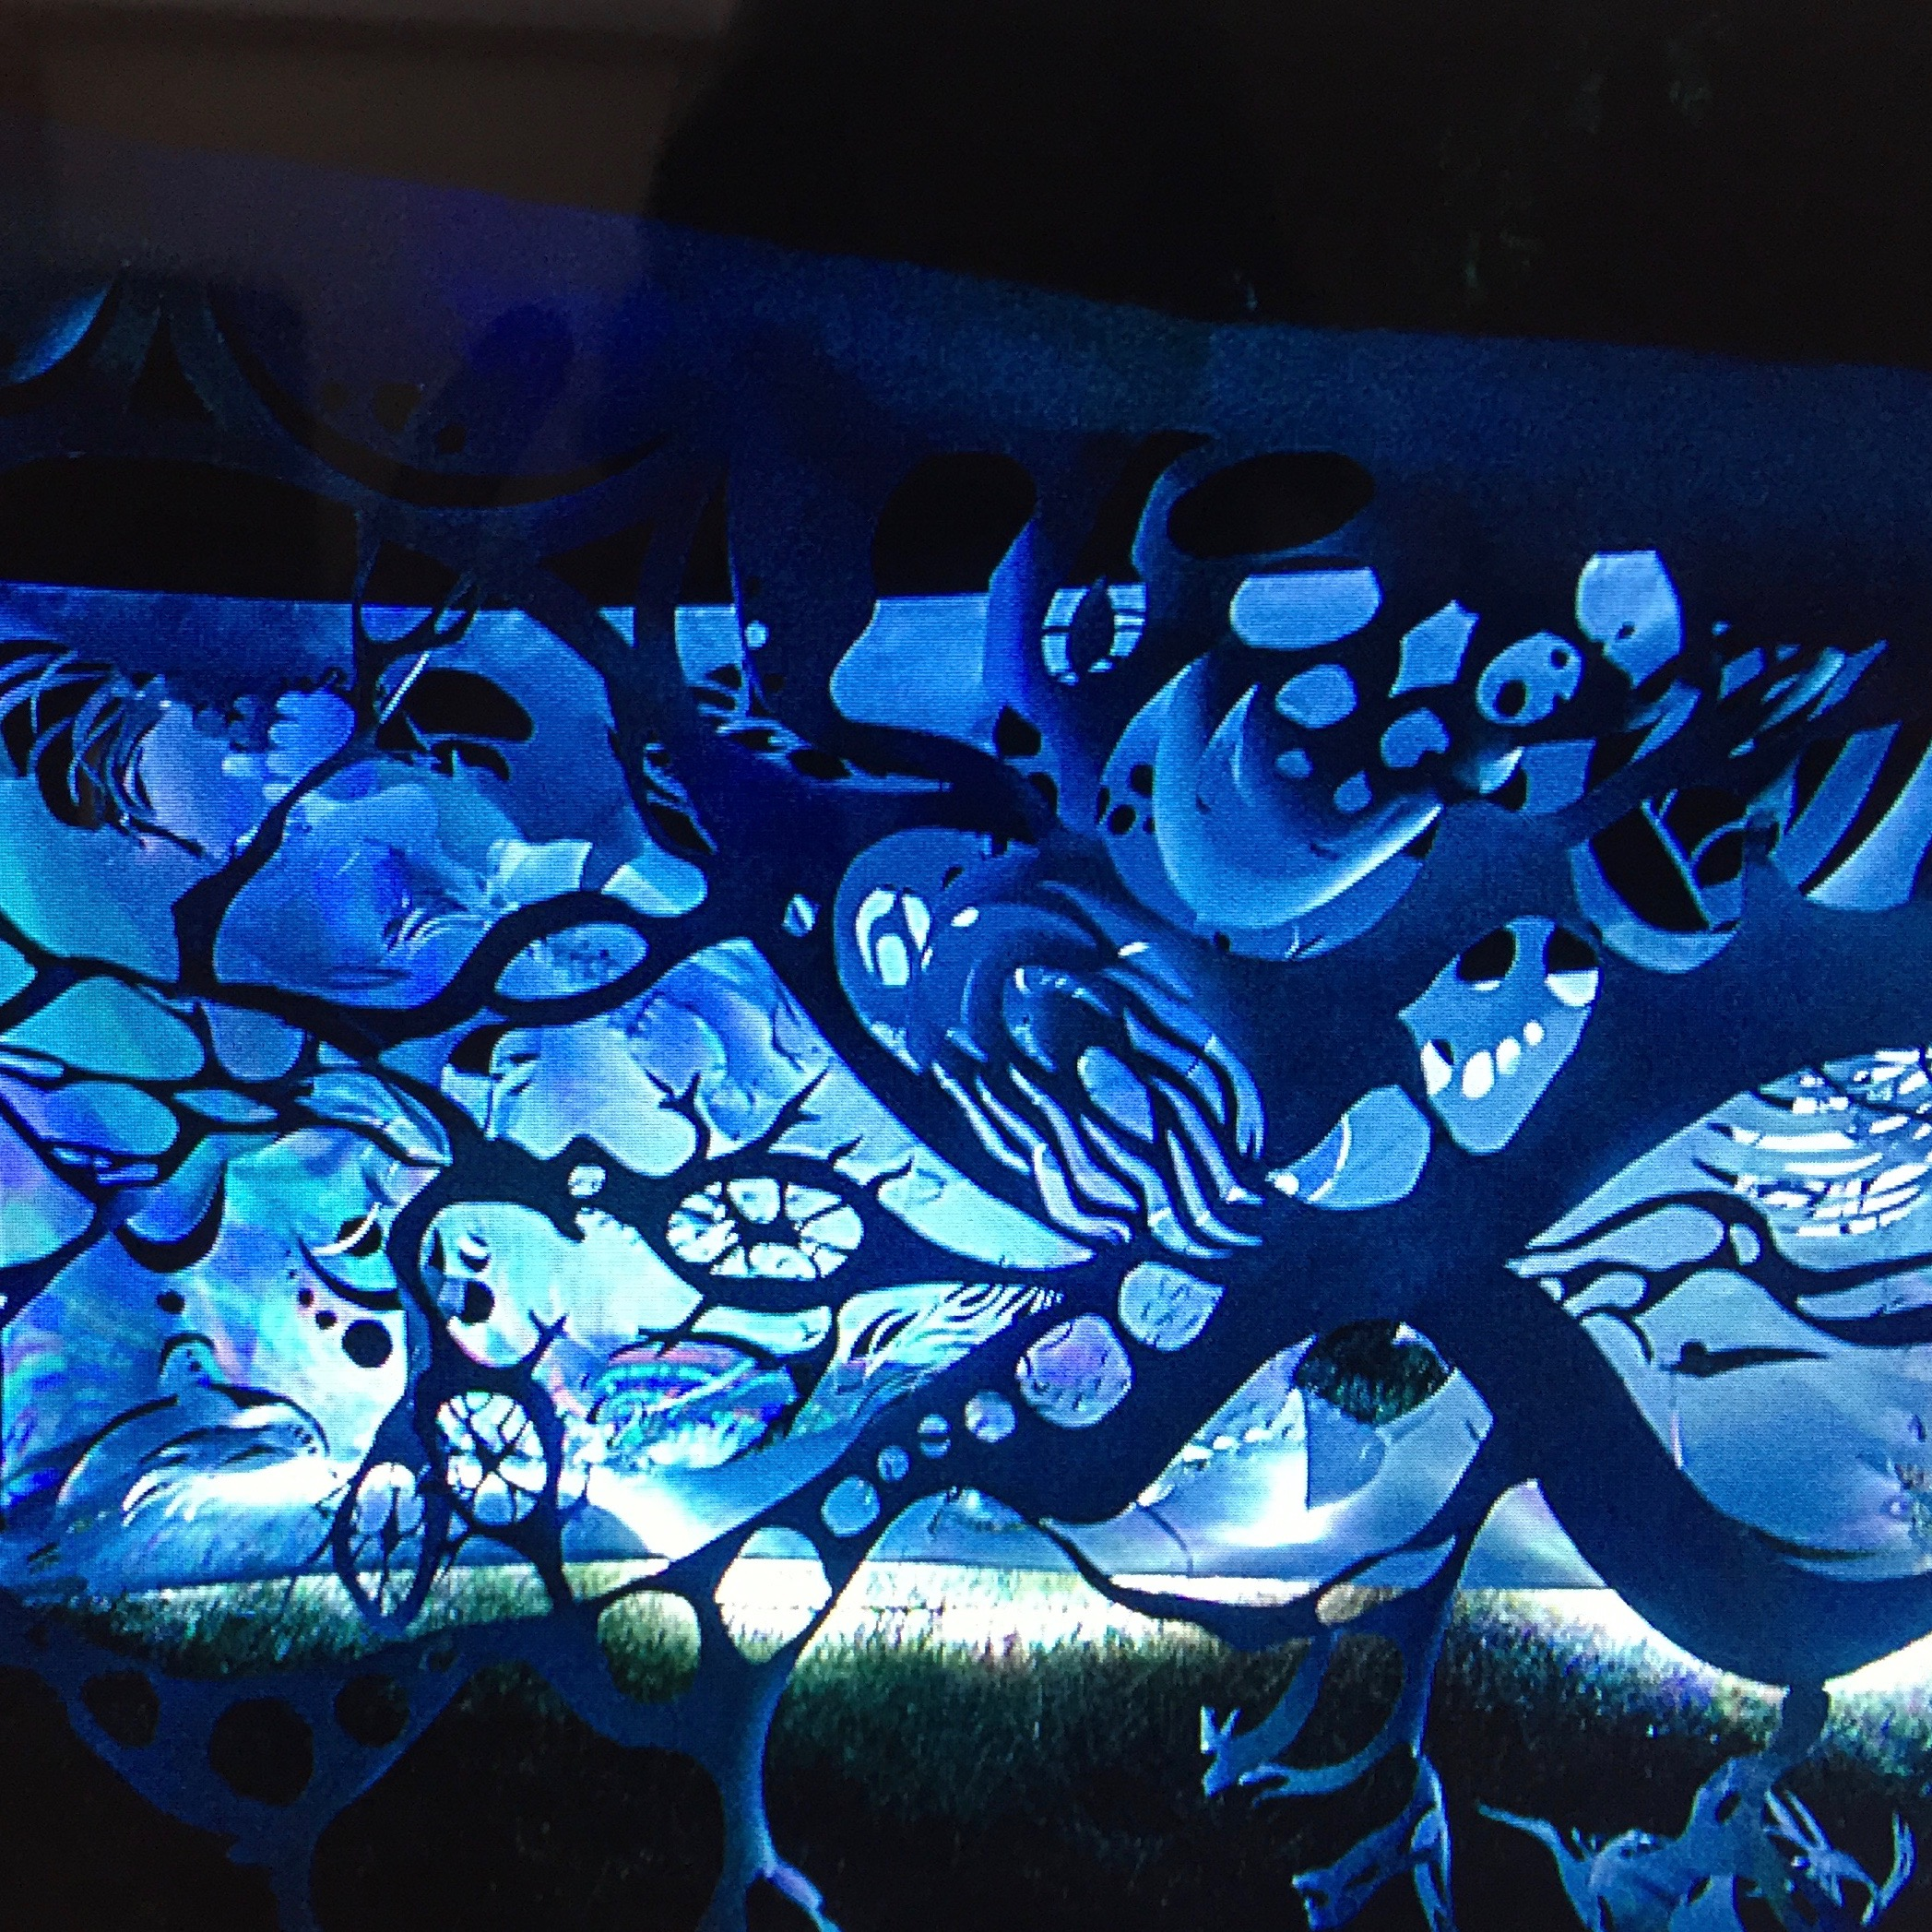 Illuminated papercut scroll by Masha Lopes. Photo by Din Dins.